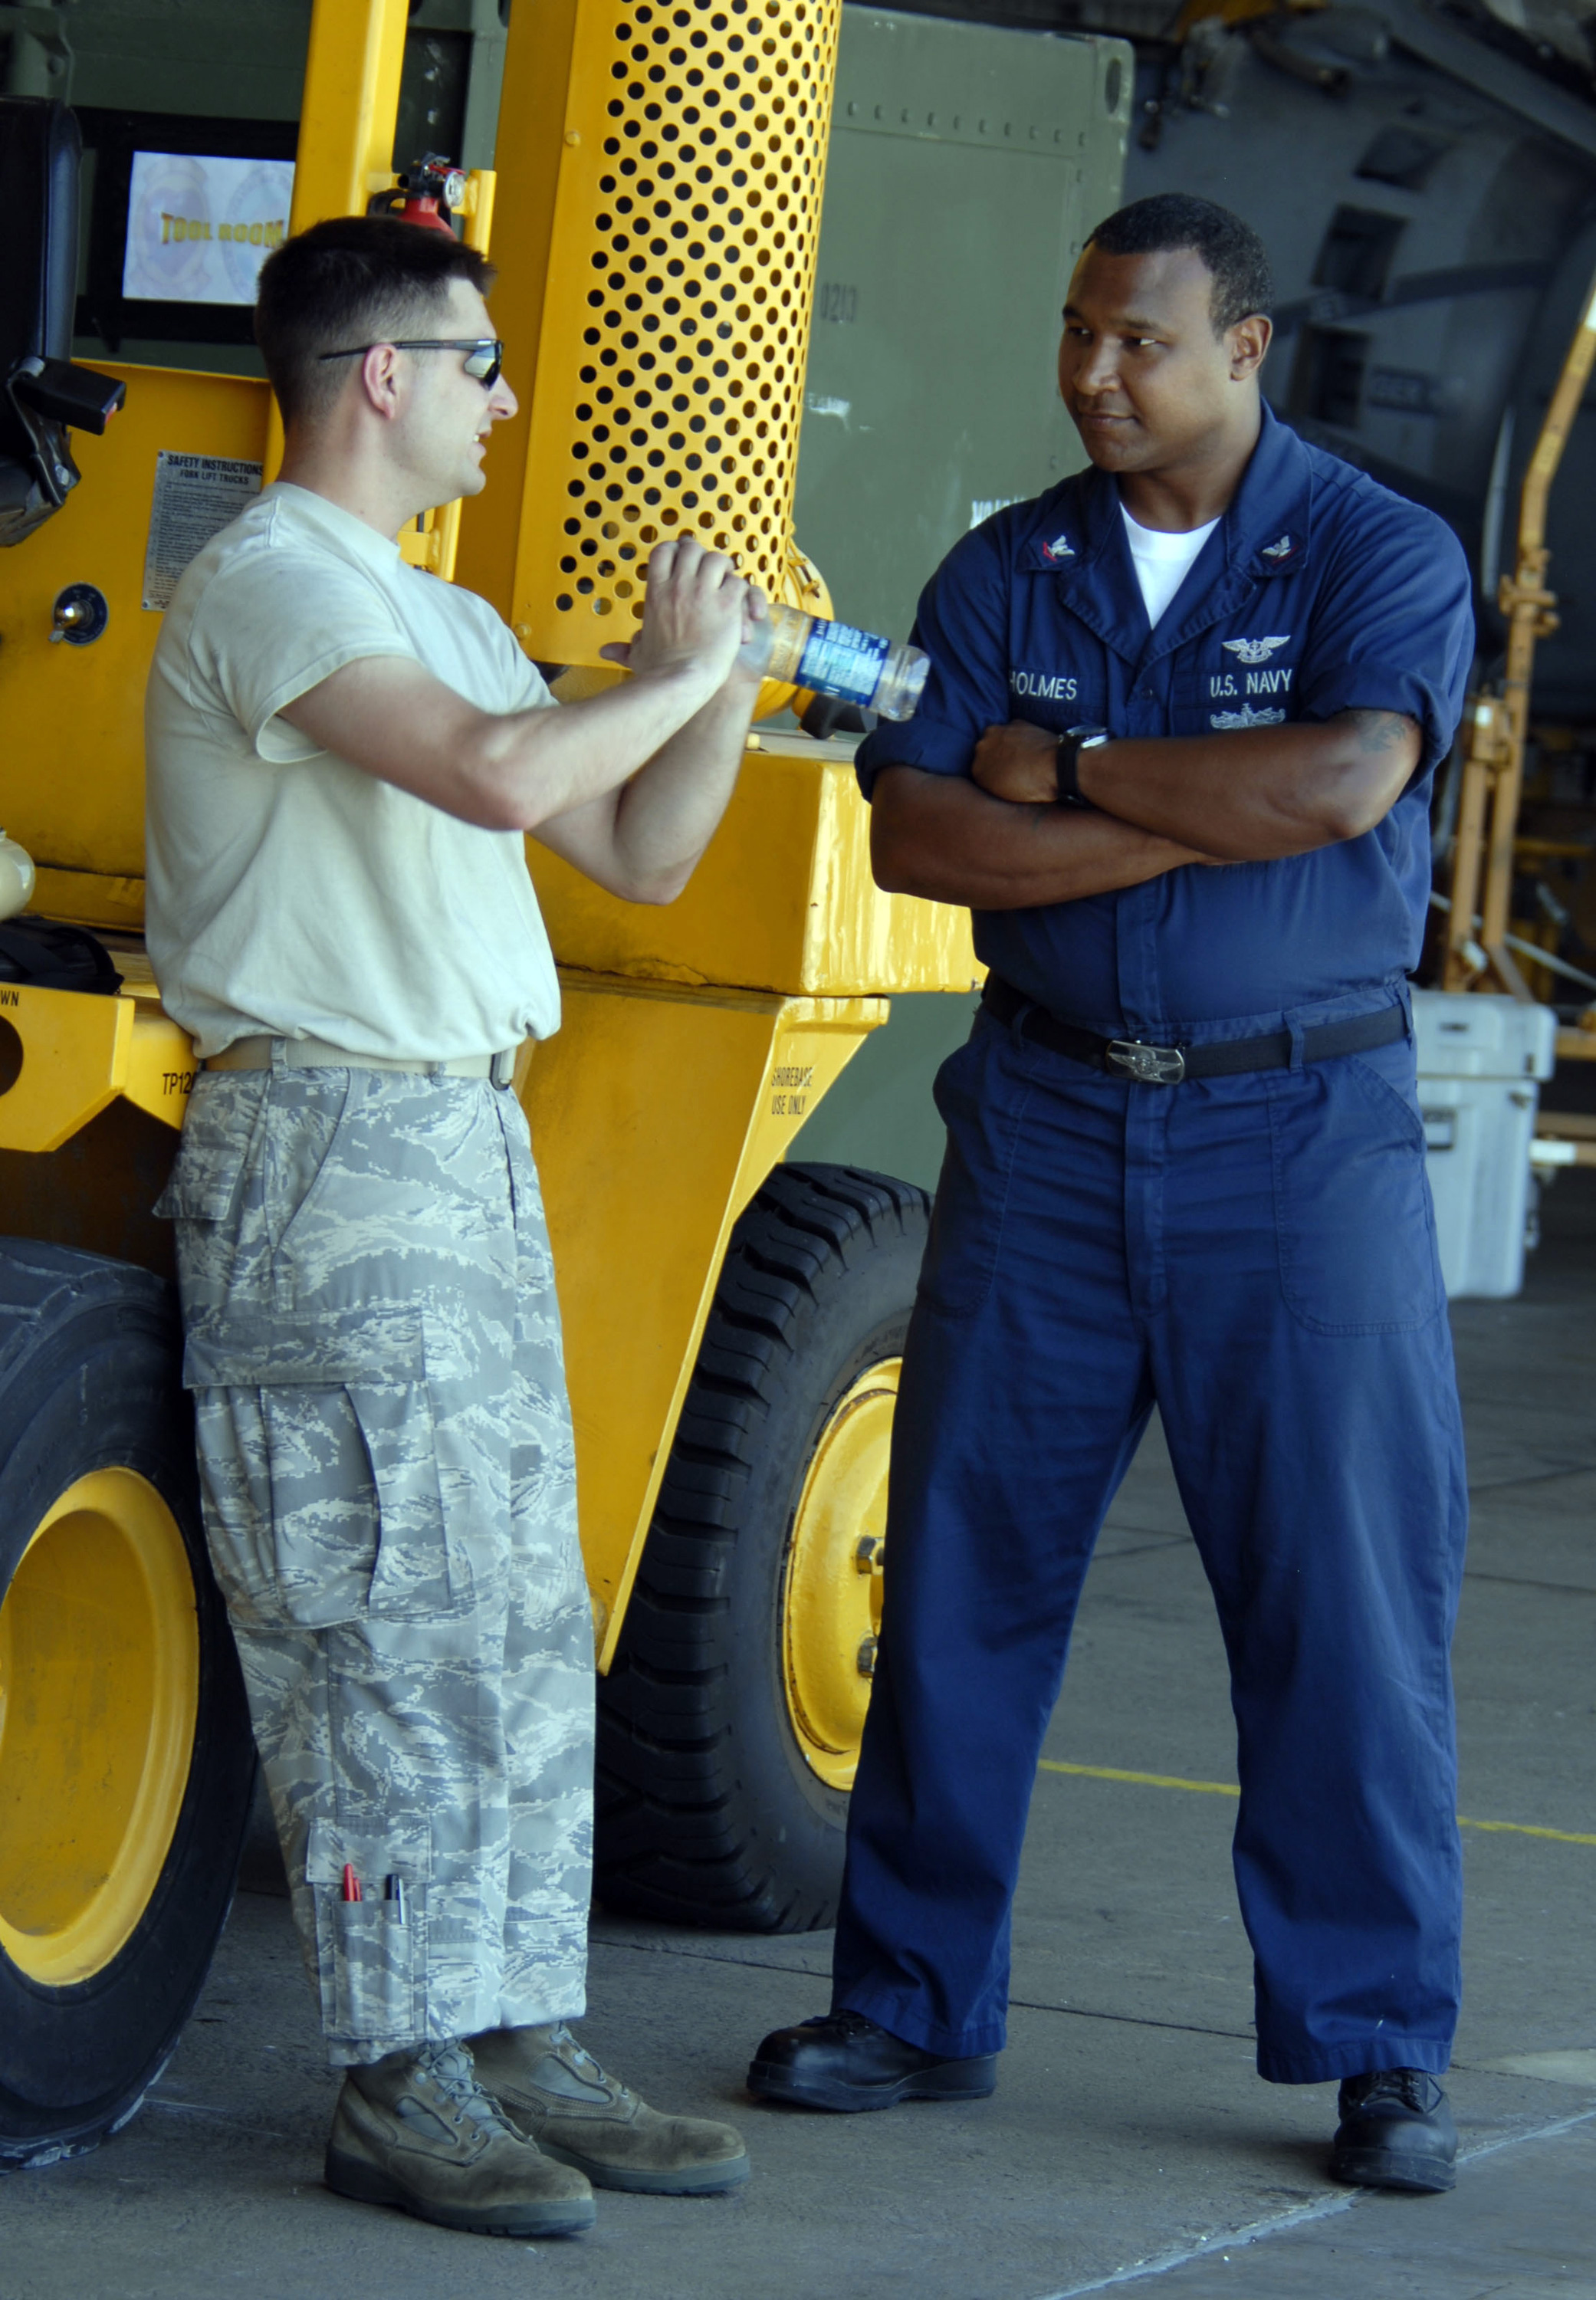 air force navy combine for air combat skills training > national air force navy combine for air combat skills training